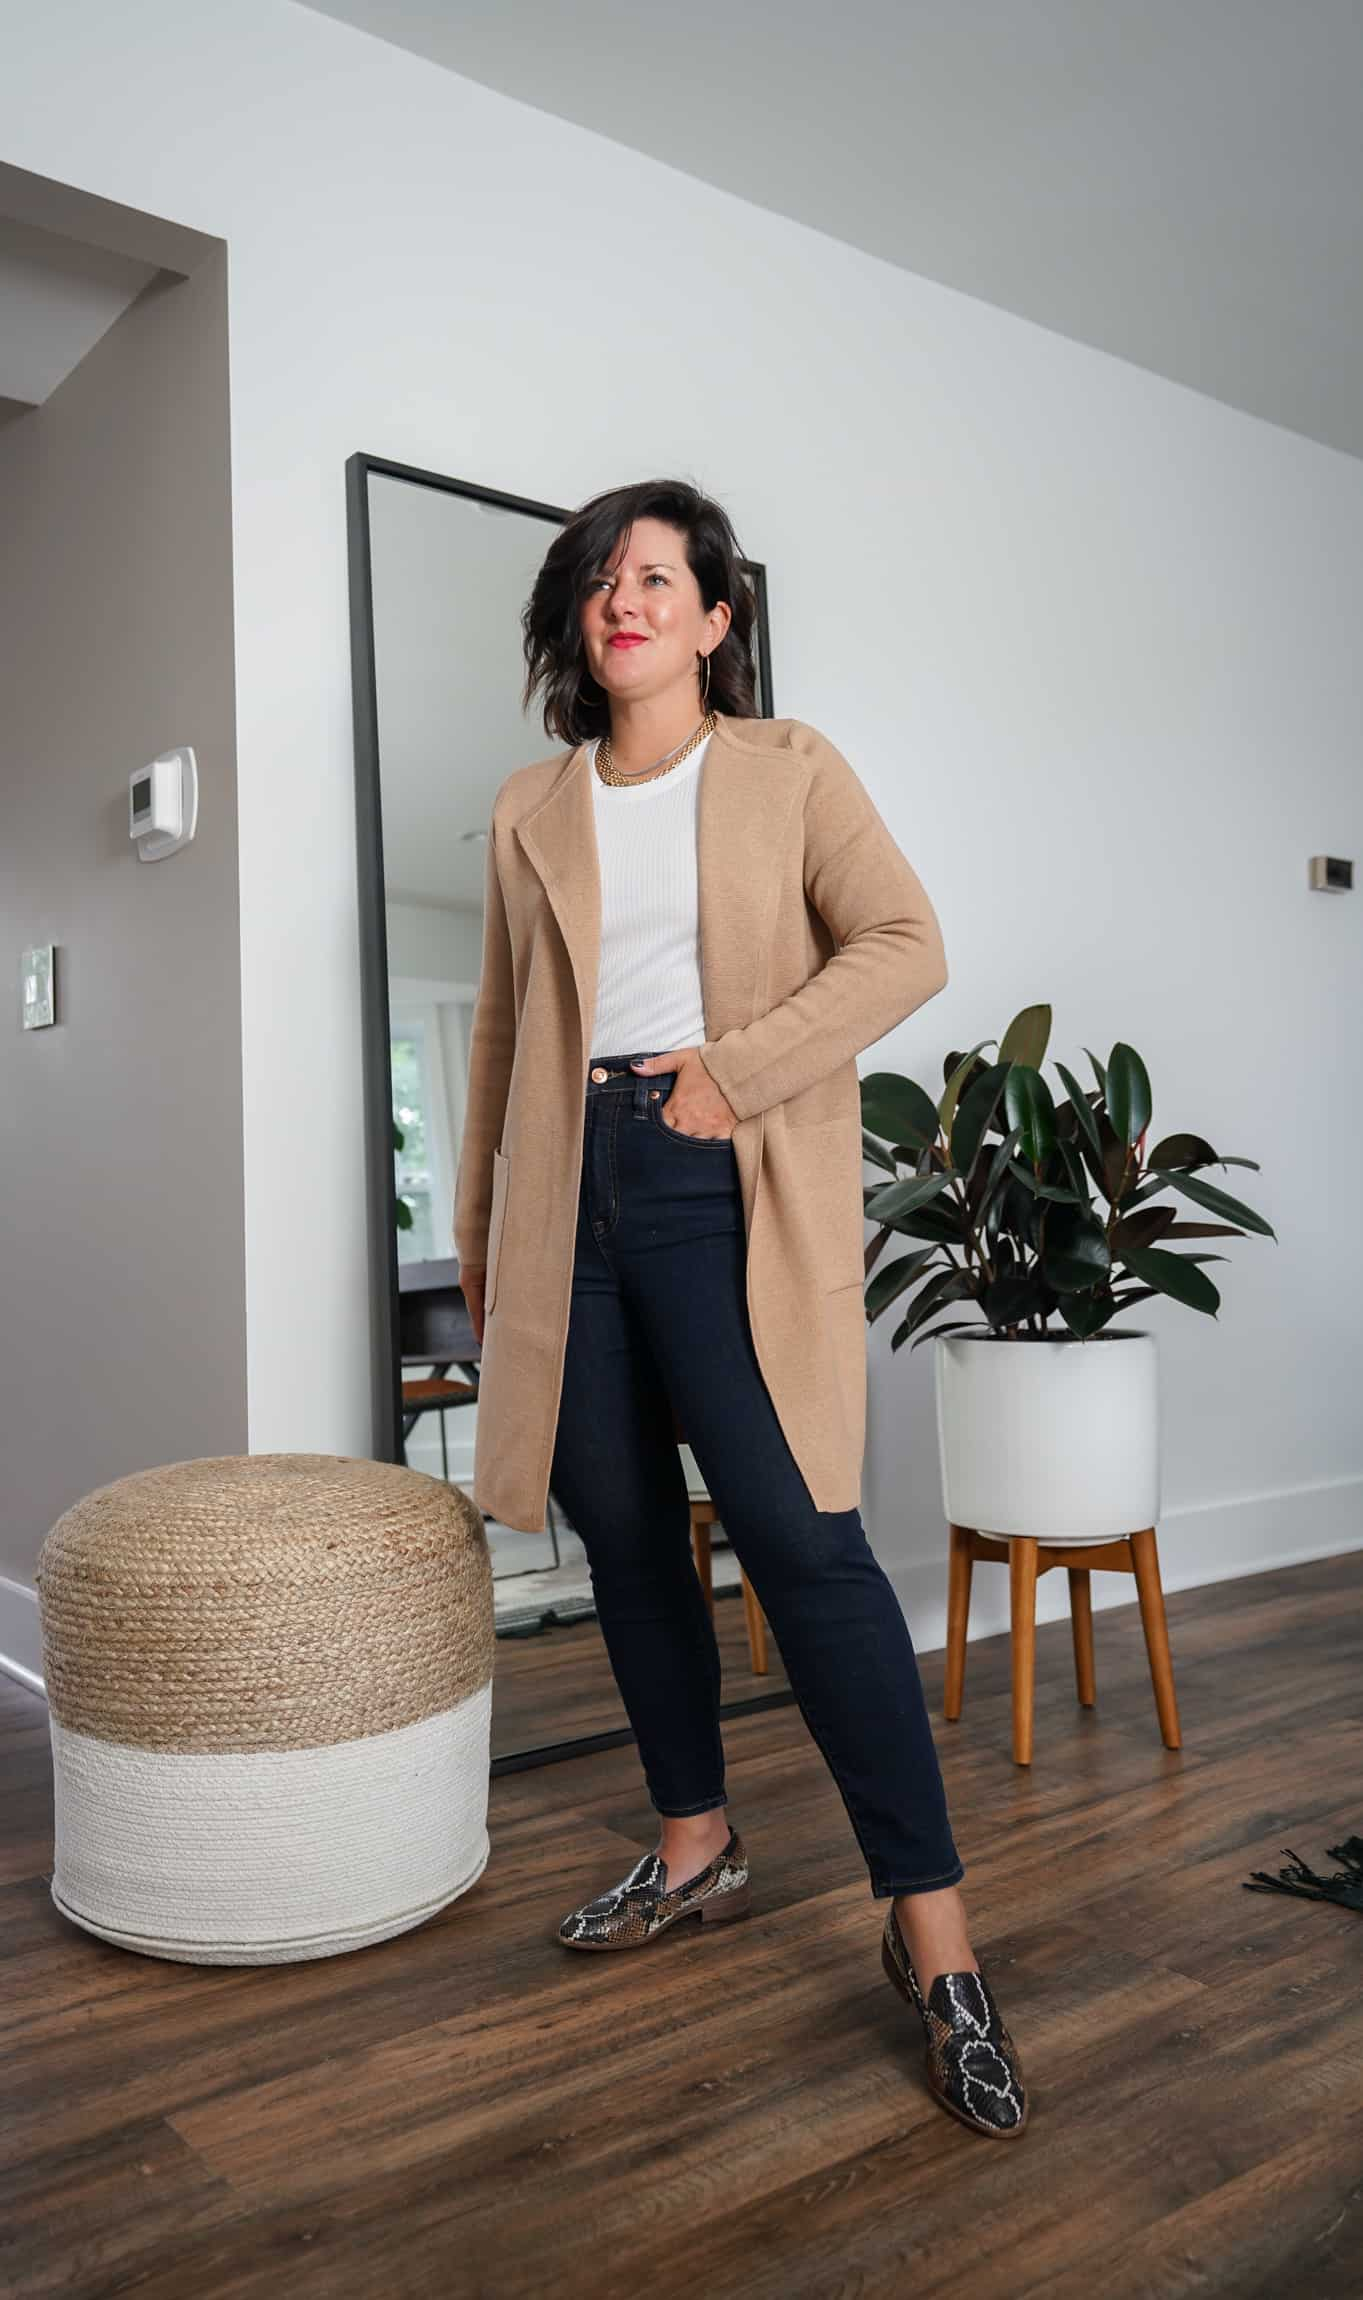 A Lily Love Affair shares how to wear a long tan cardigan with a white top and snakeskin flats